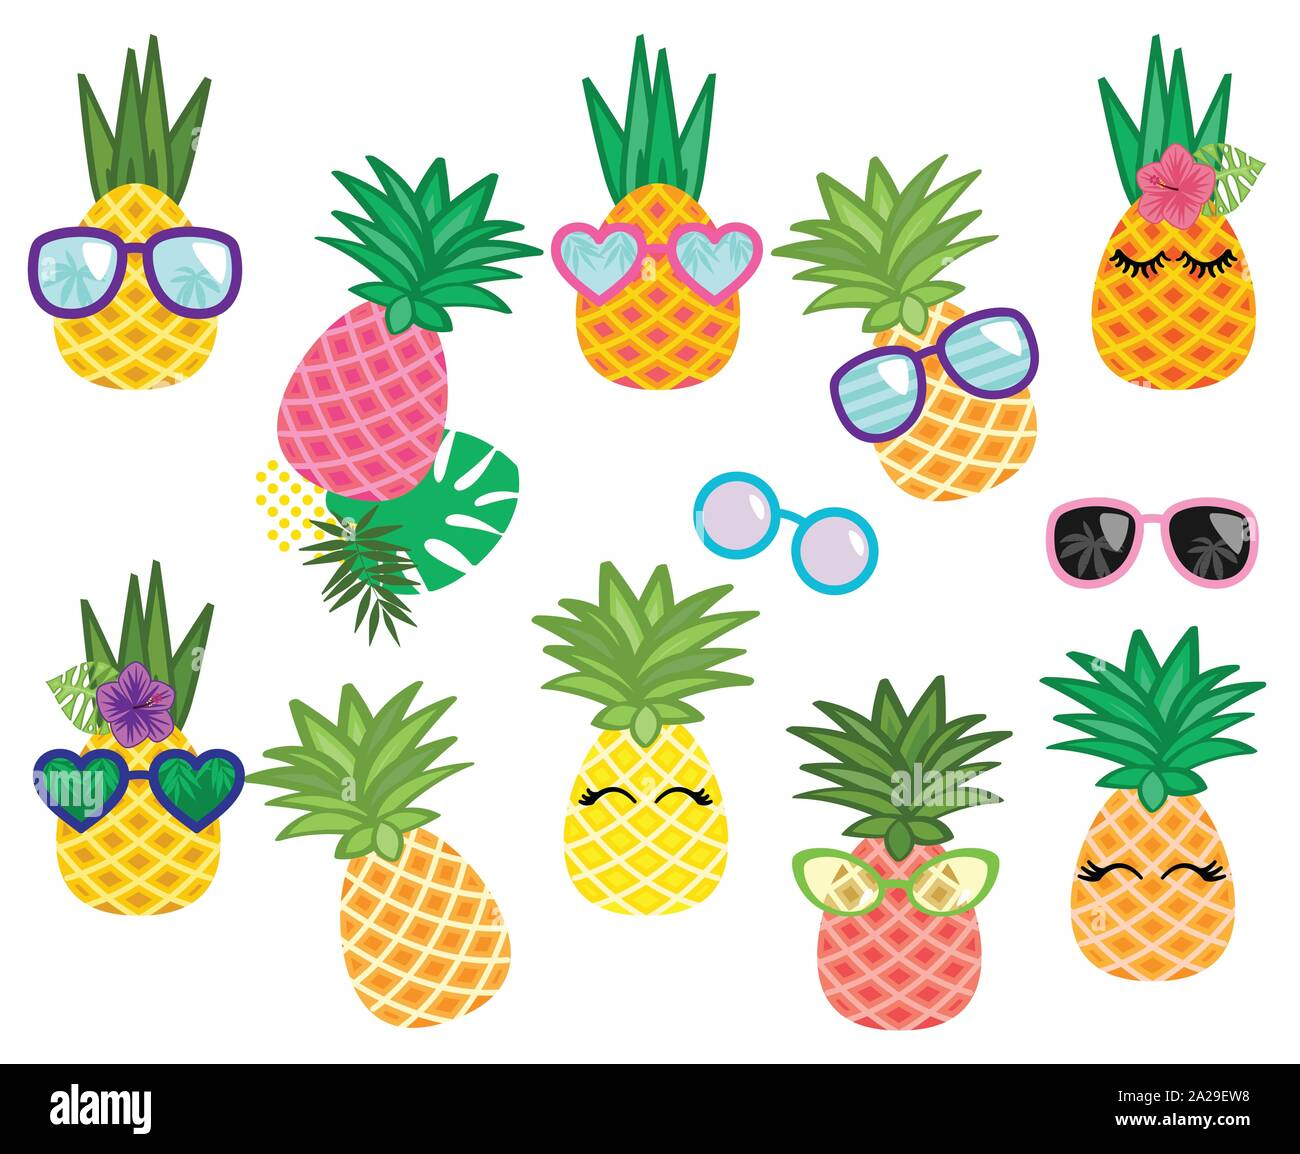 Vector Collection Of Cute Kawaii Pineapples Stock Vector Art